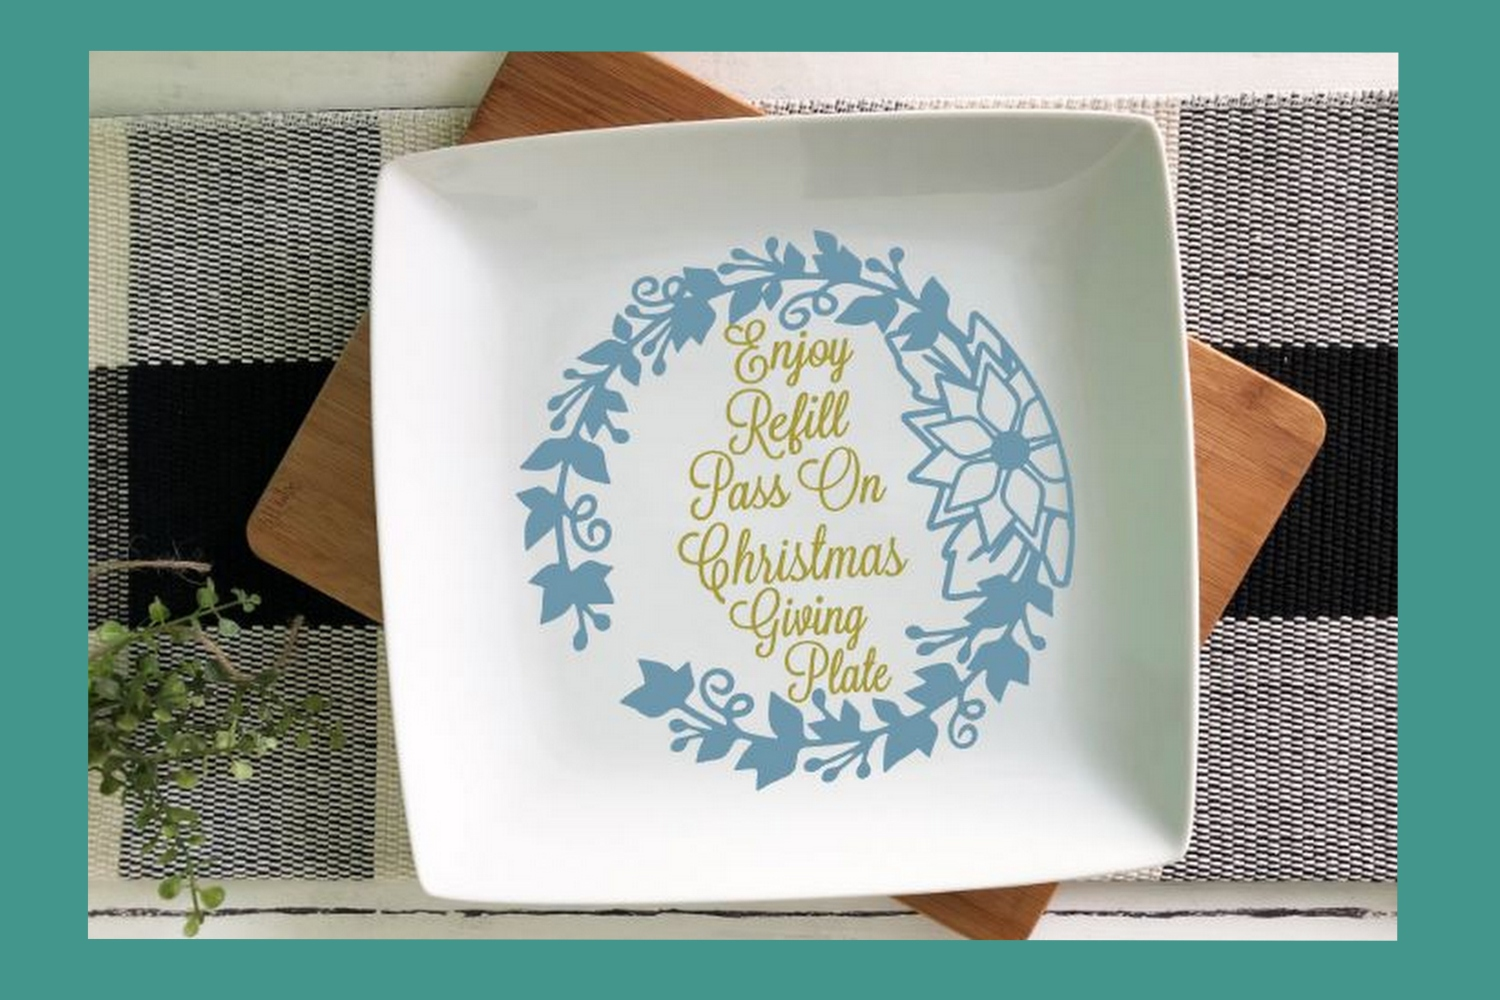 SVG Cut File Christmas Giving Plate Design #06 example image 2